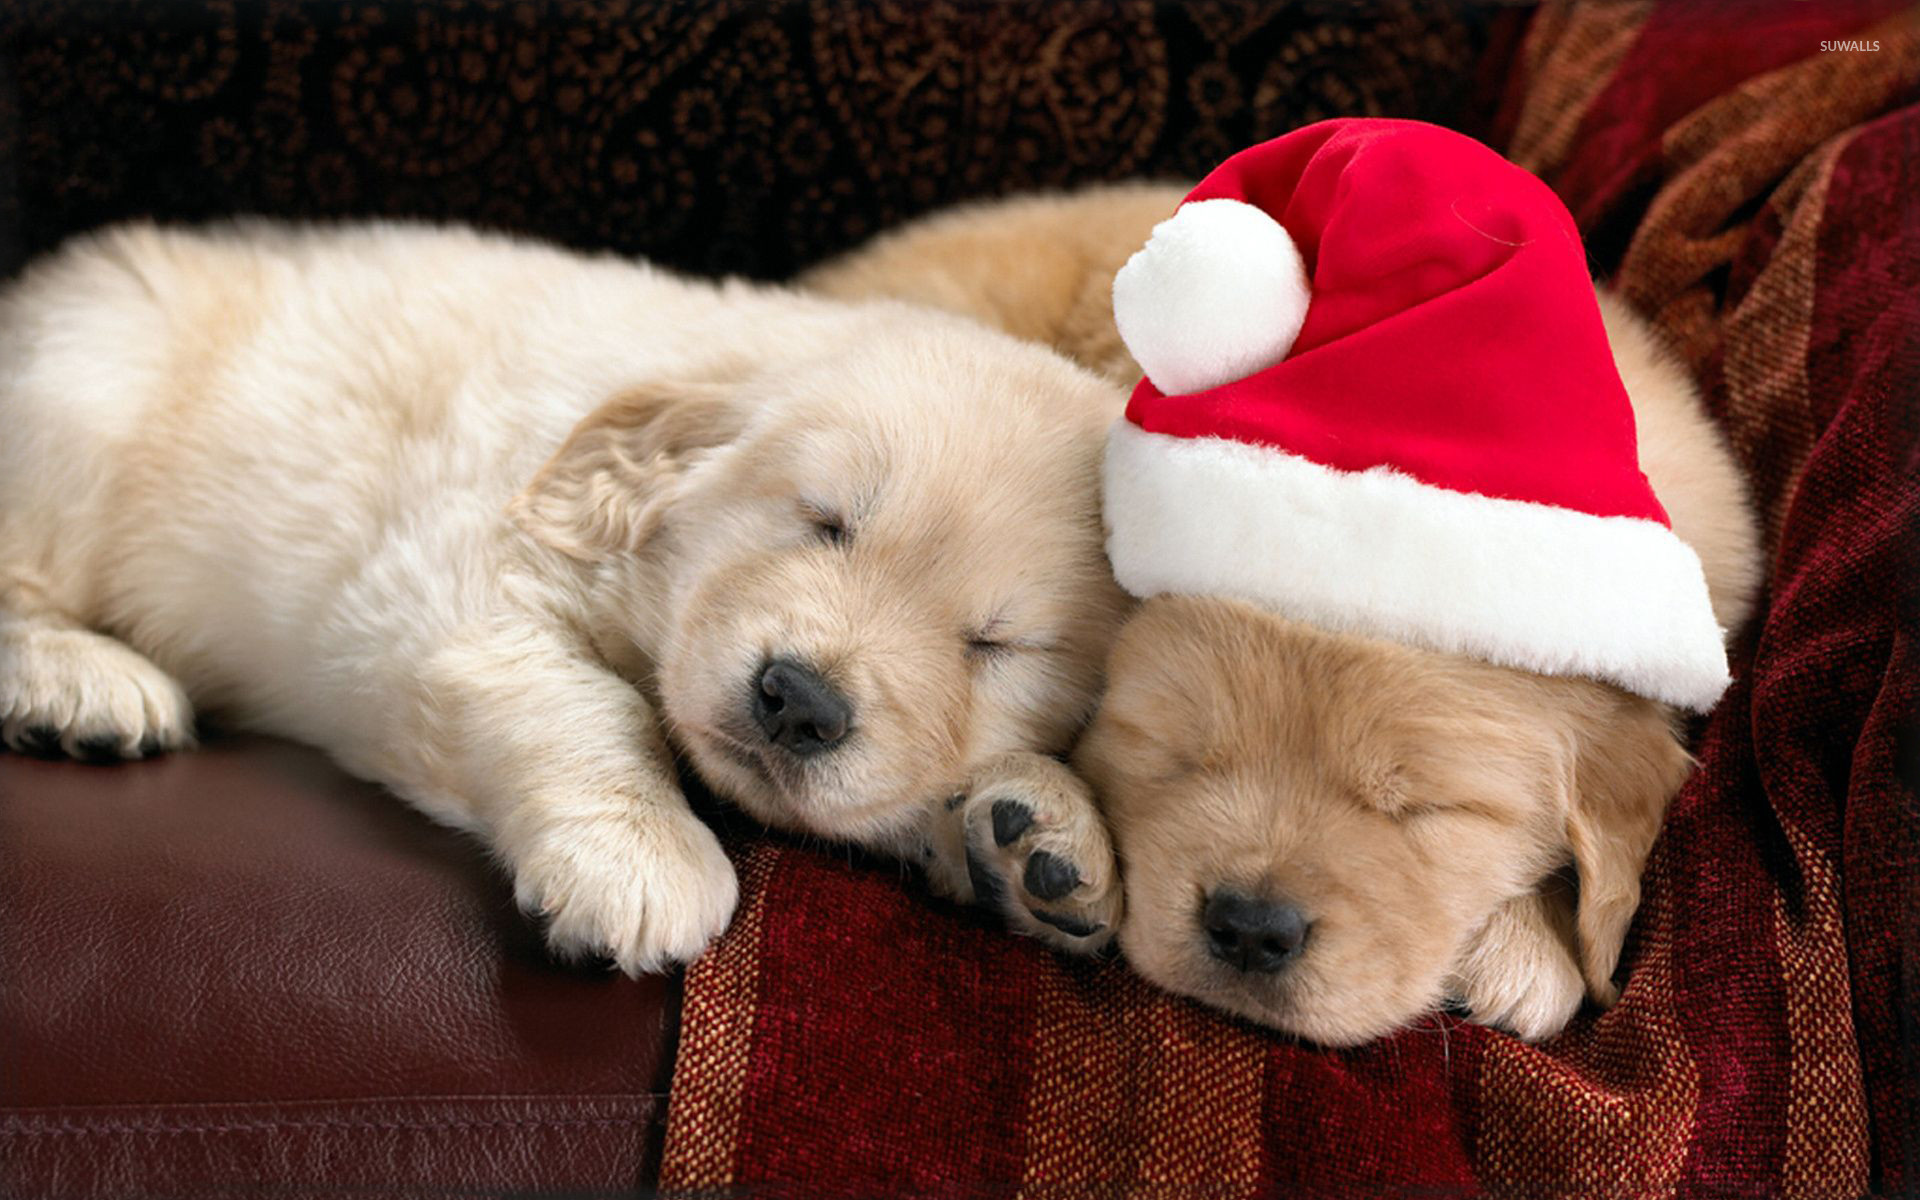 1920x1200 Adorable puppies sleeping on the couch on Christmas Eve wallpaper   jpg